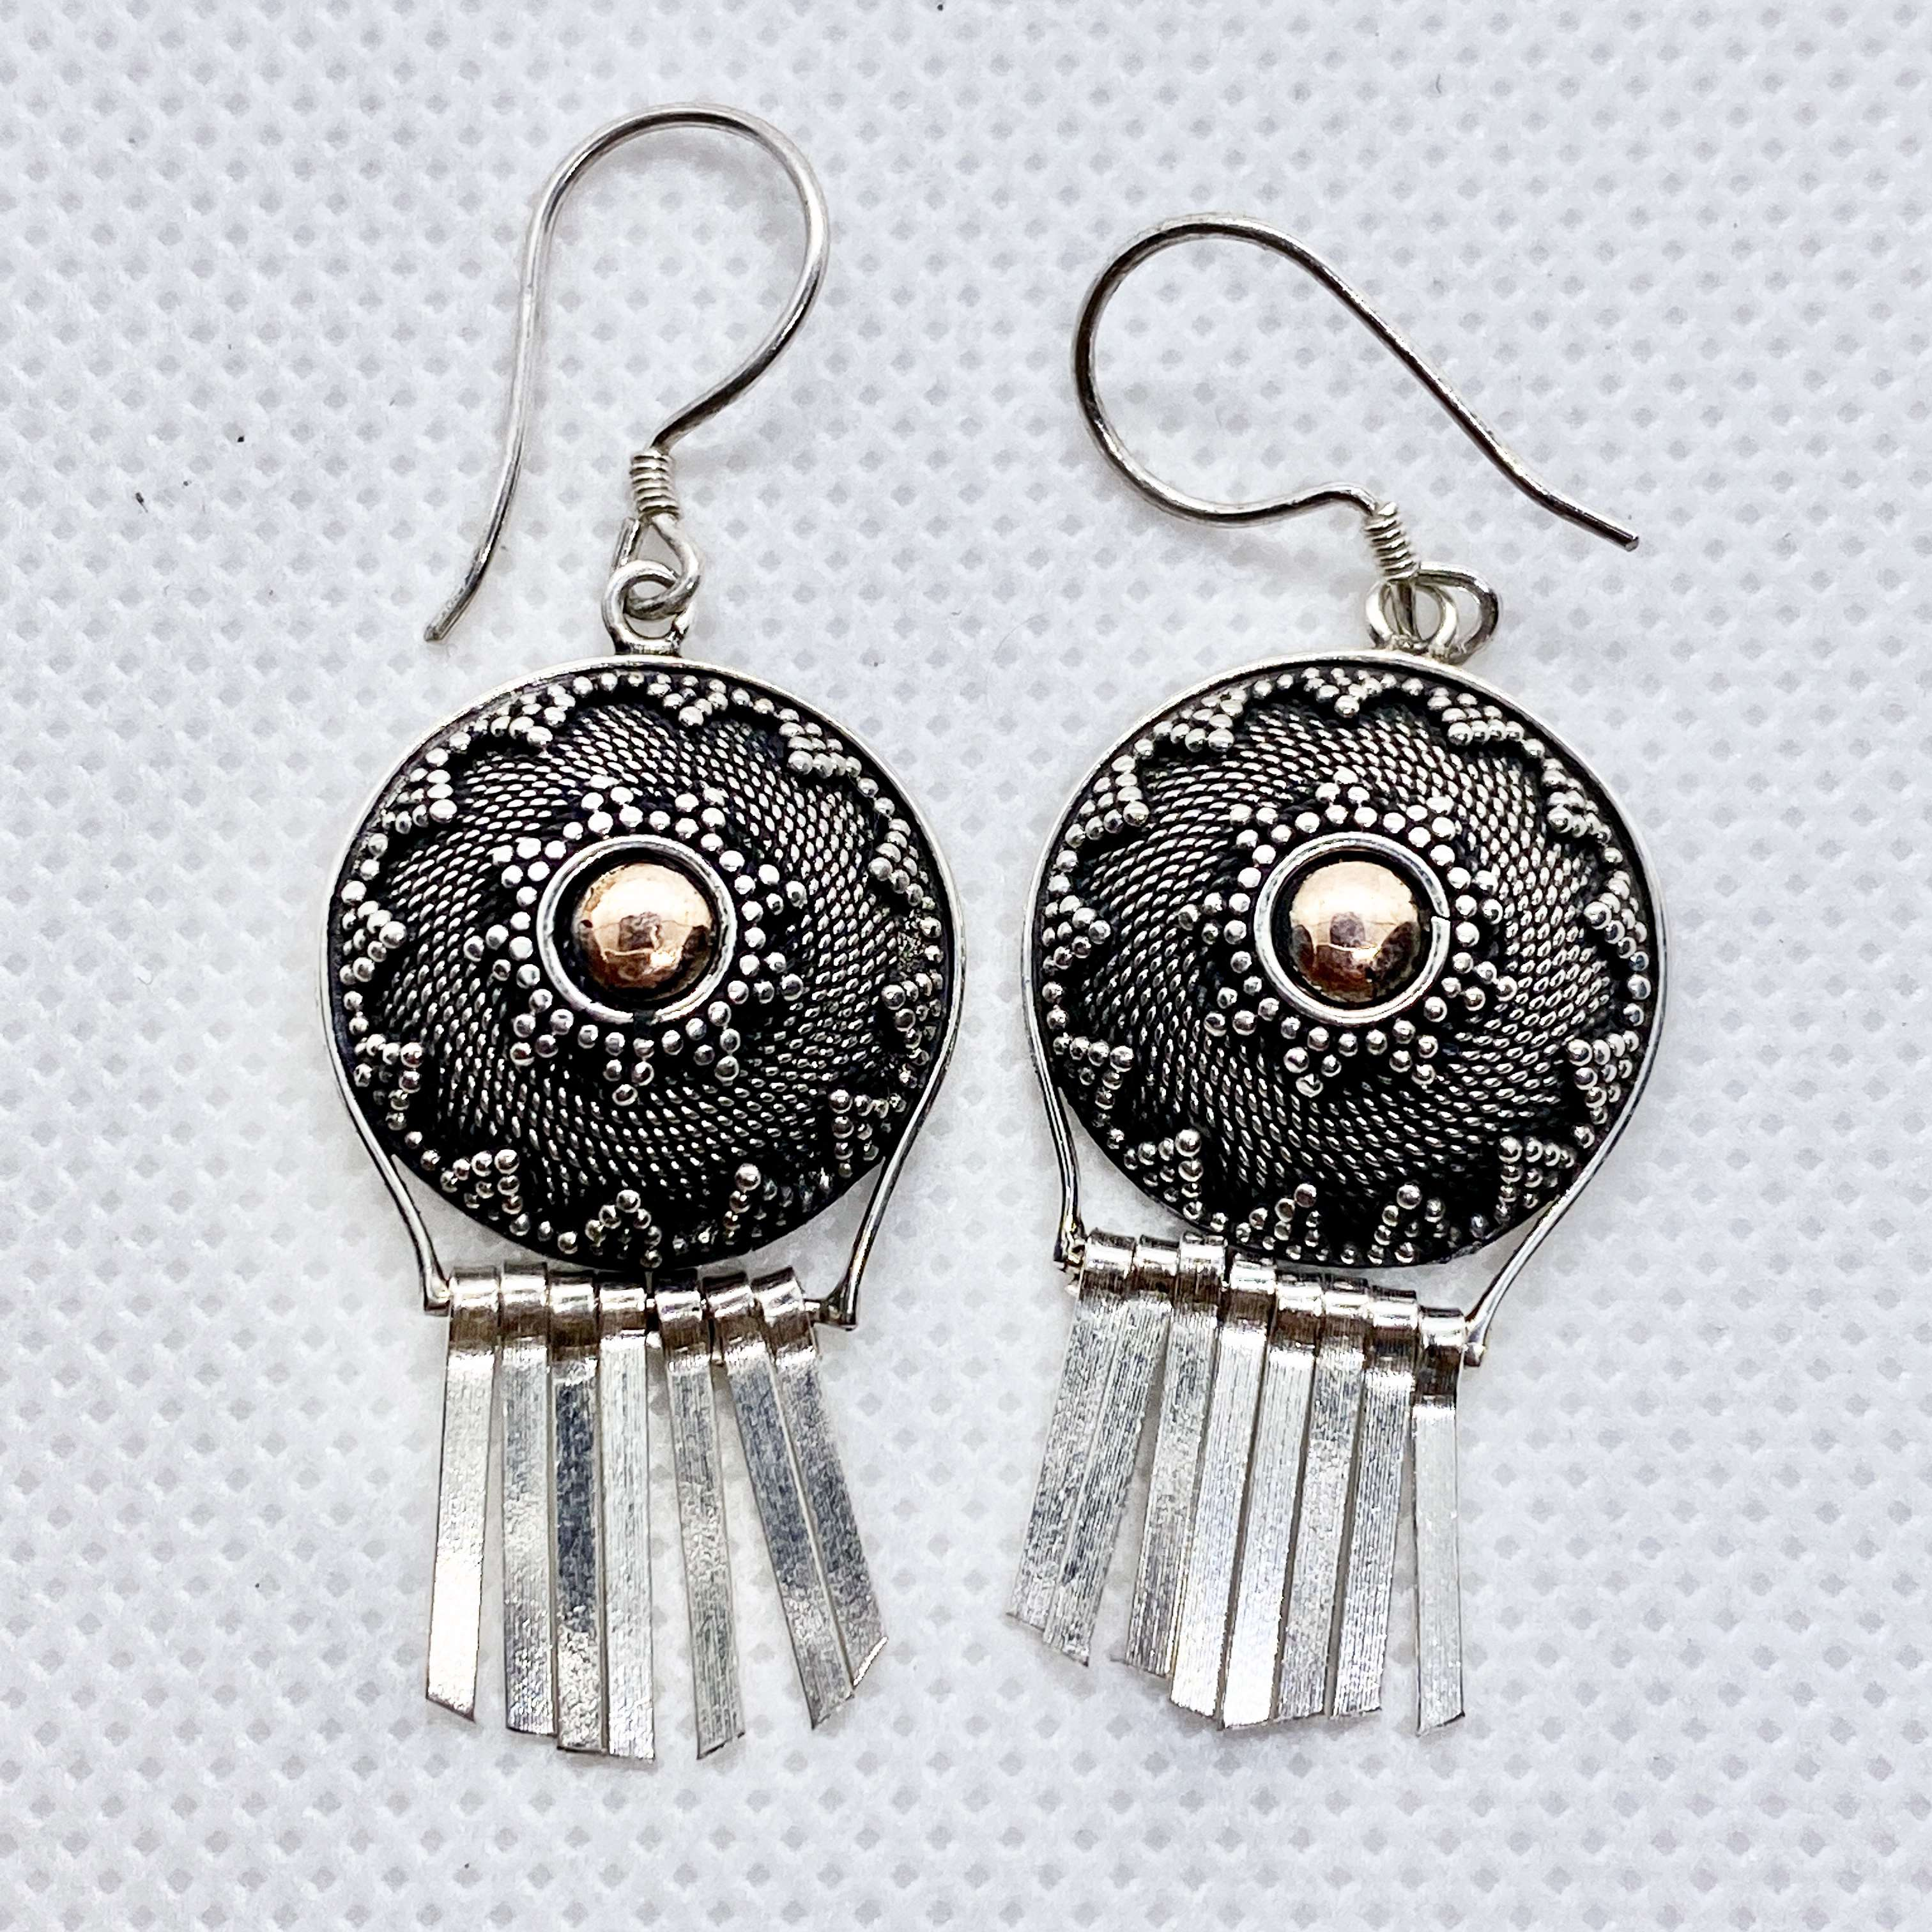 (UNIQUE 925 BALI SILVER EARRINGS WITH 18 KT GOLD ACCENT)